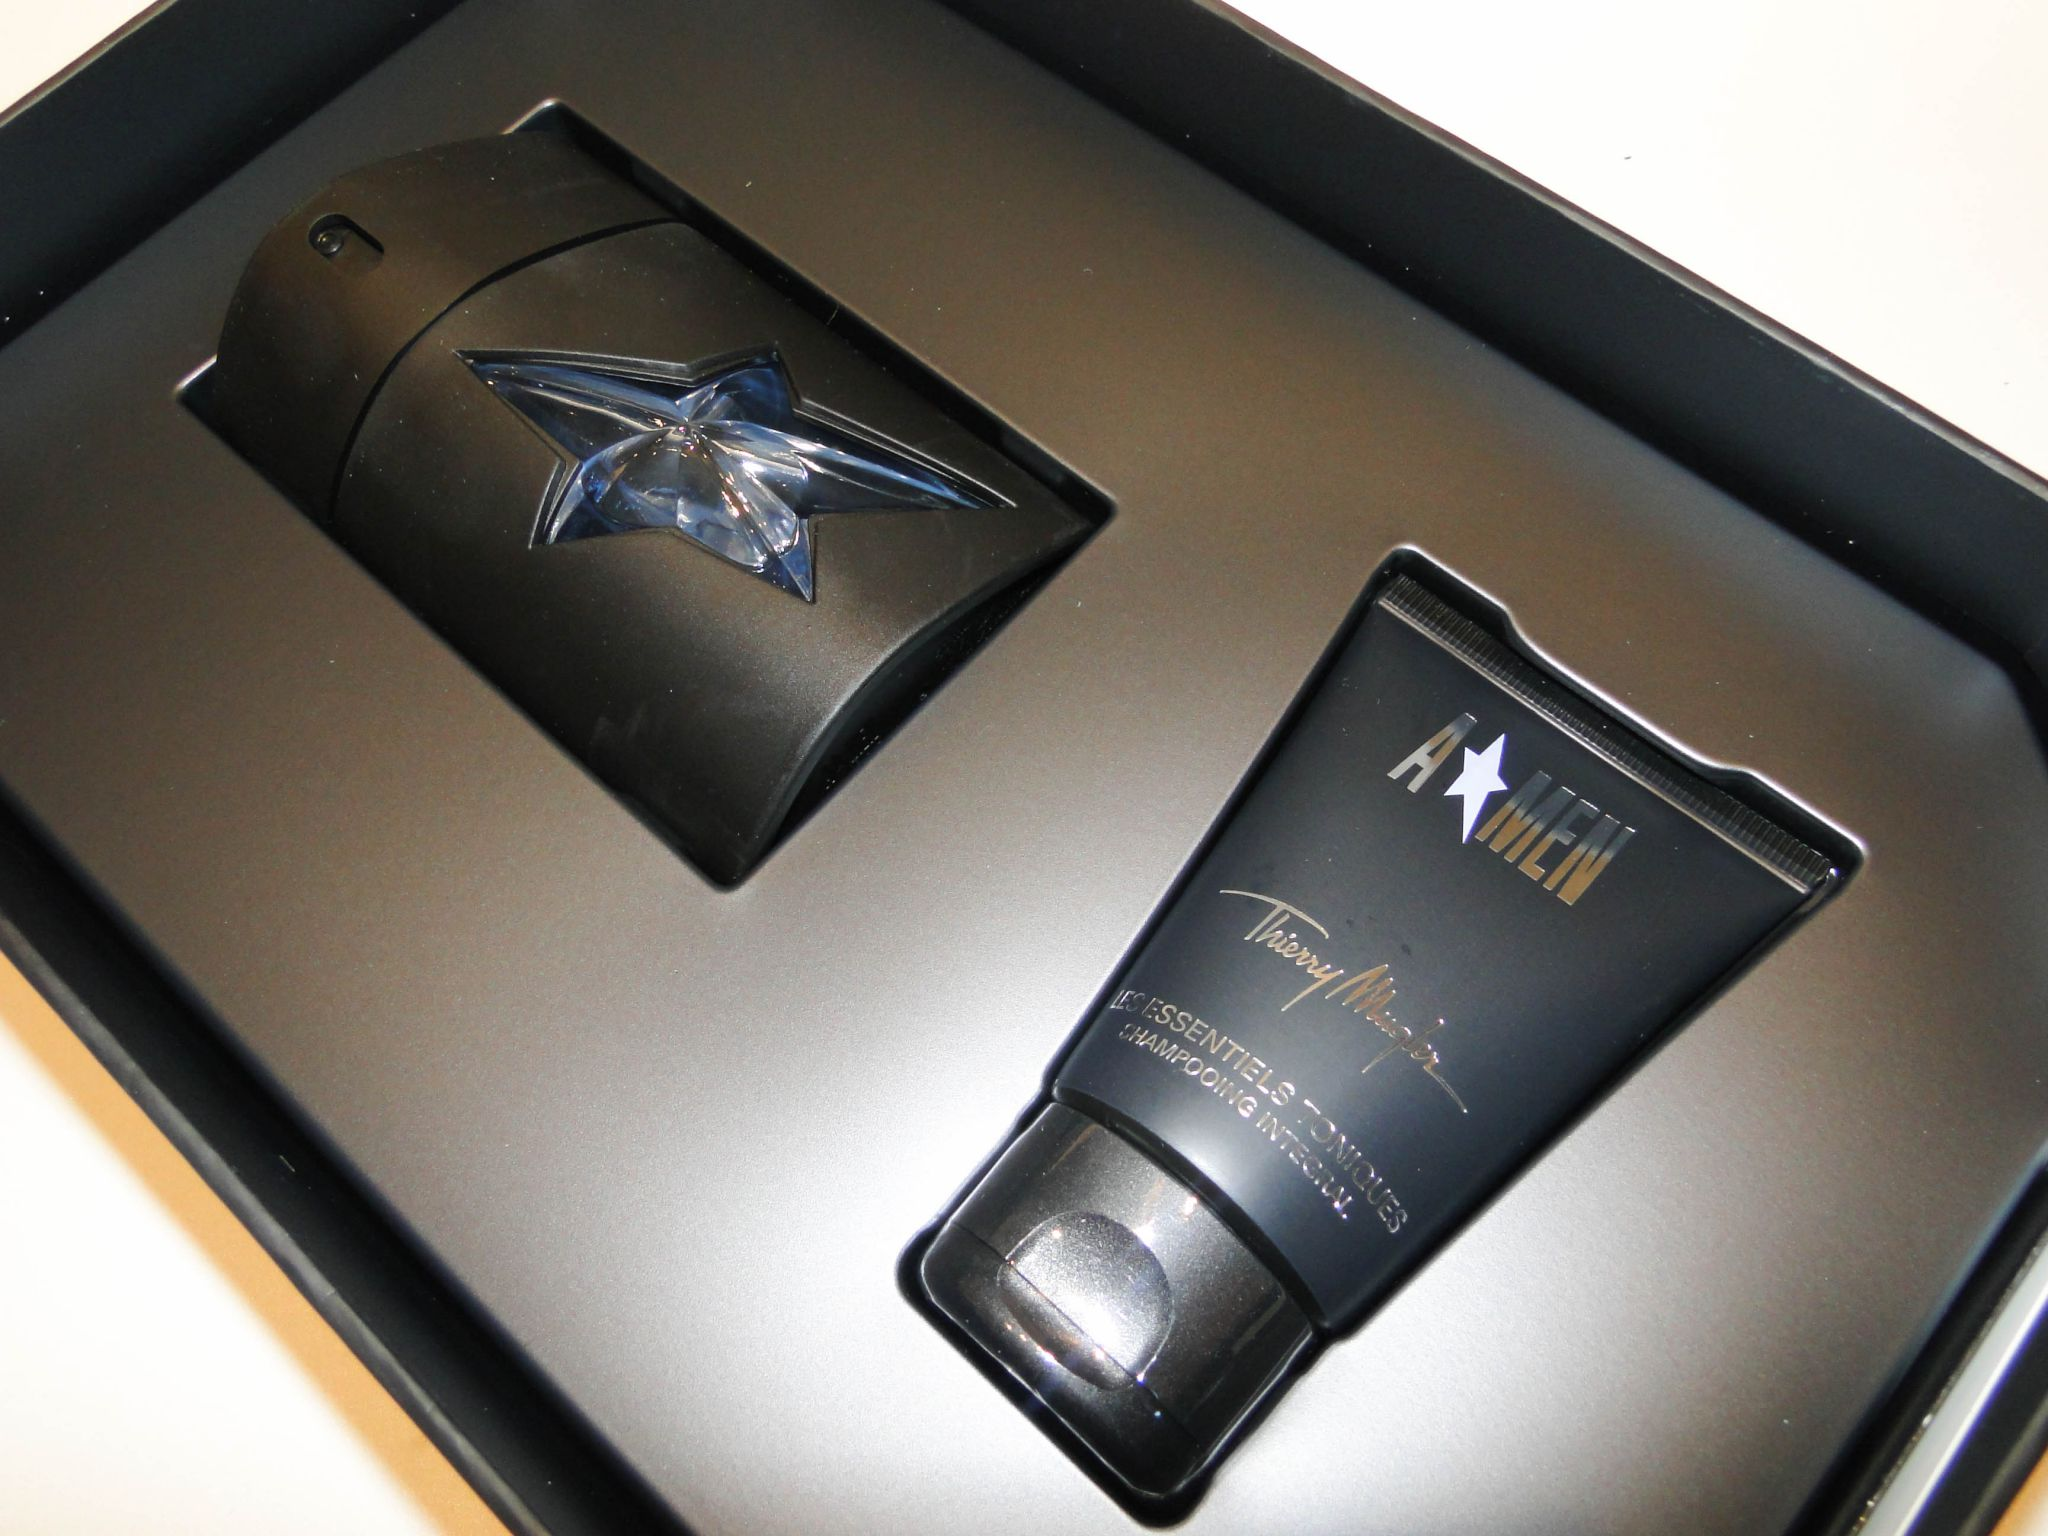 Thierry Mugler A*Men Eau de Toilette Gift Set-2